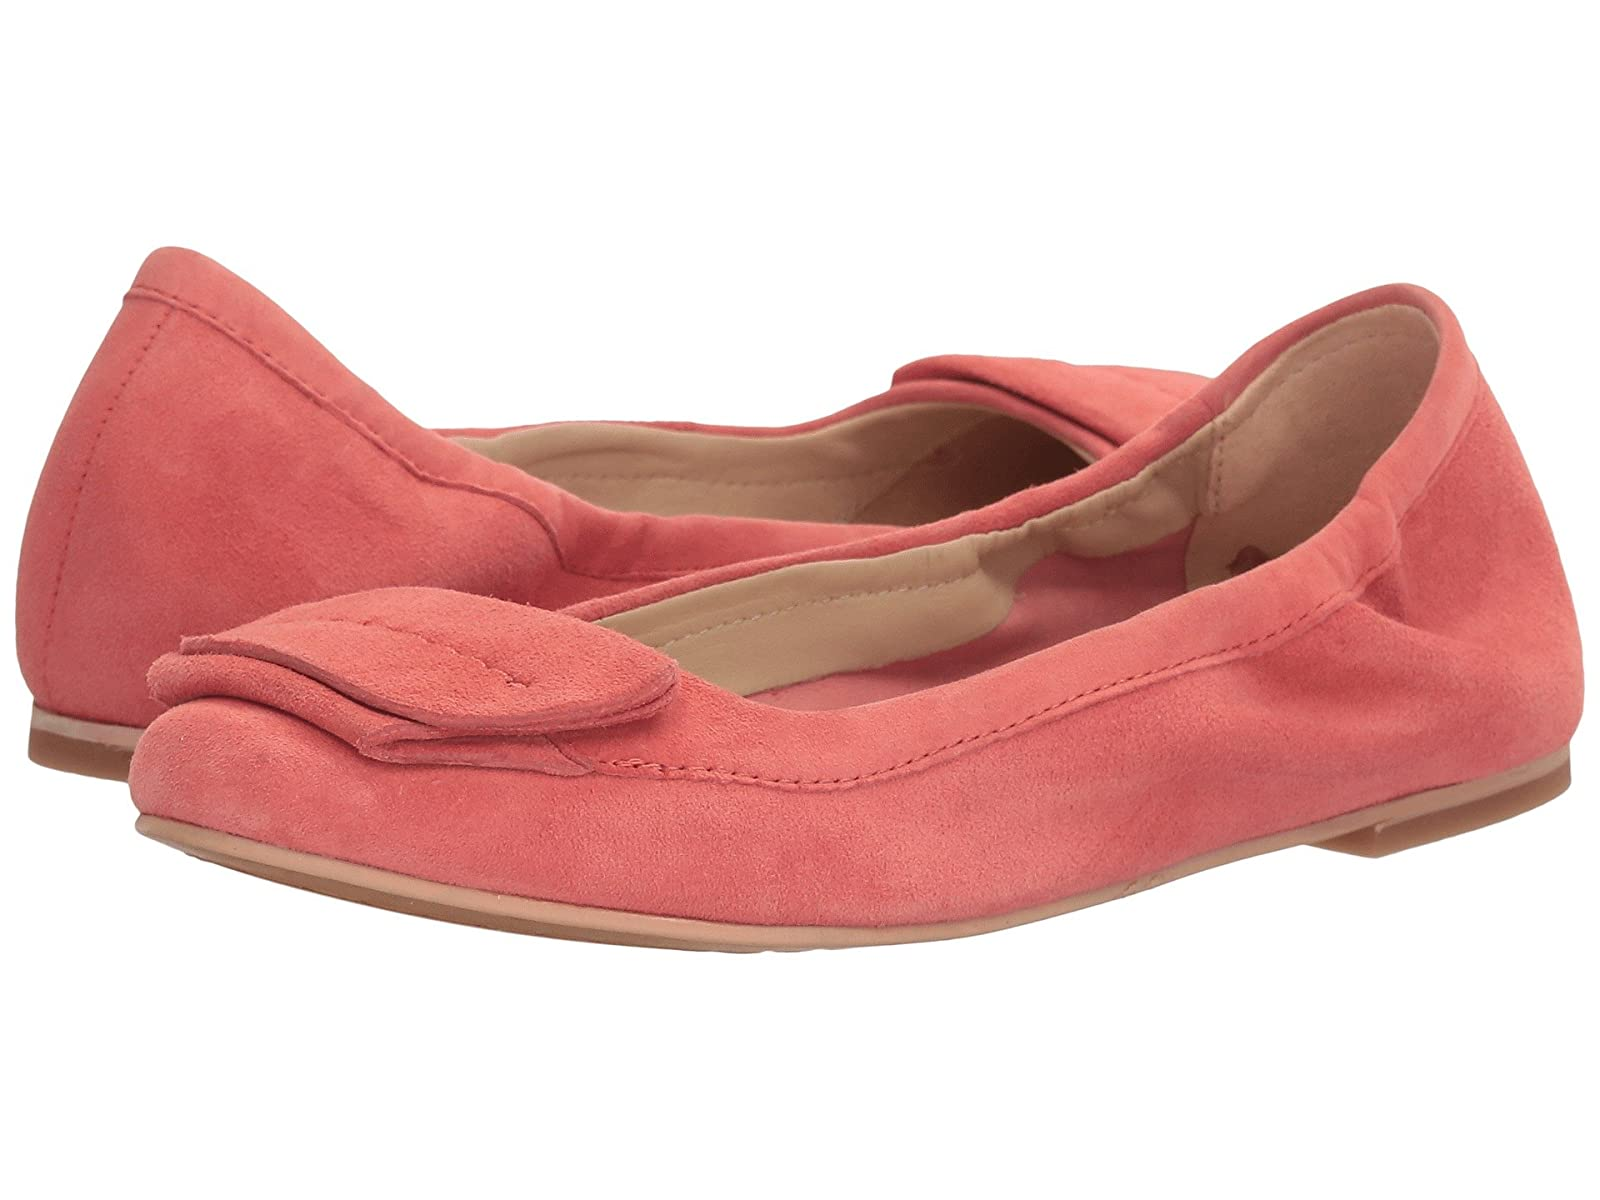 Hush Puppies Livi HeatherCheap and distinctive eye-catching shoes